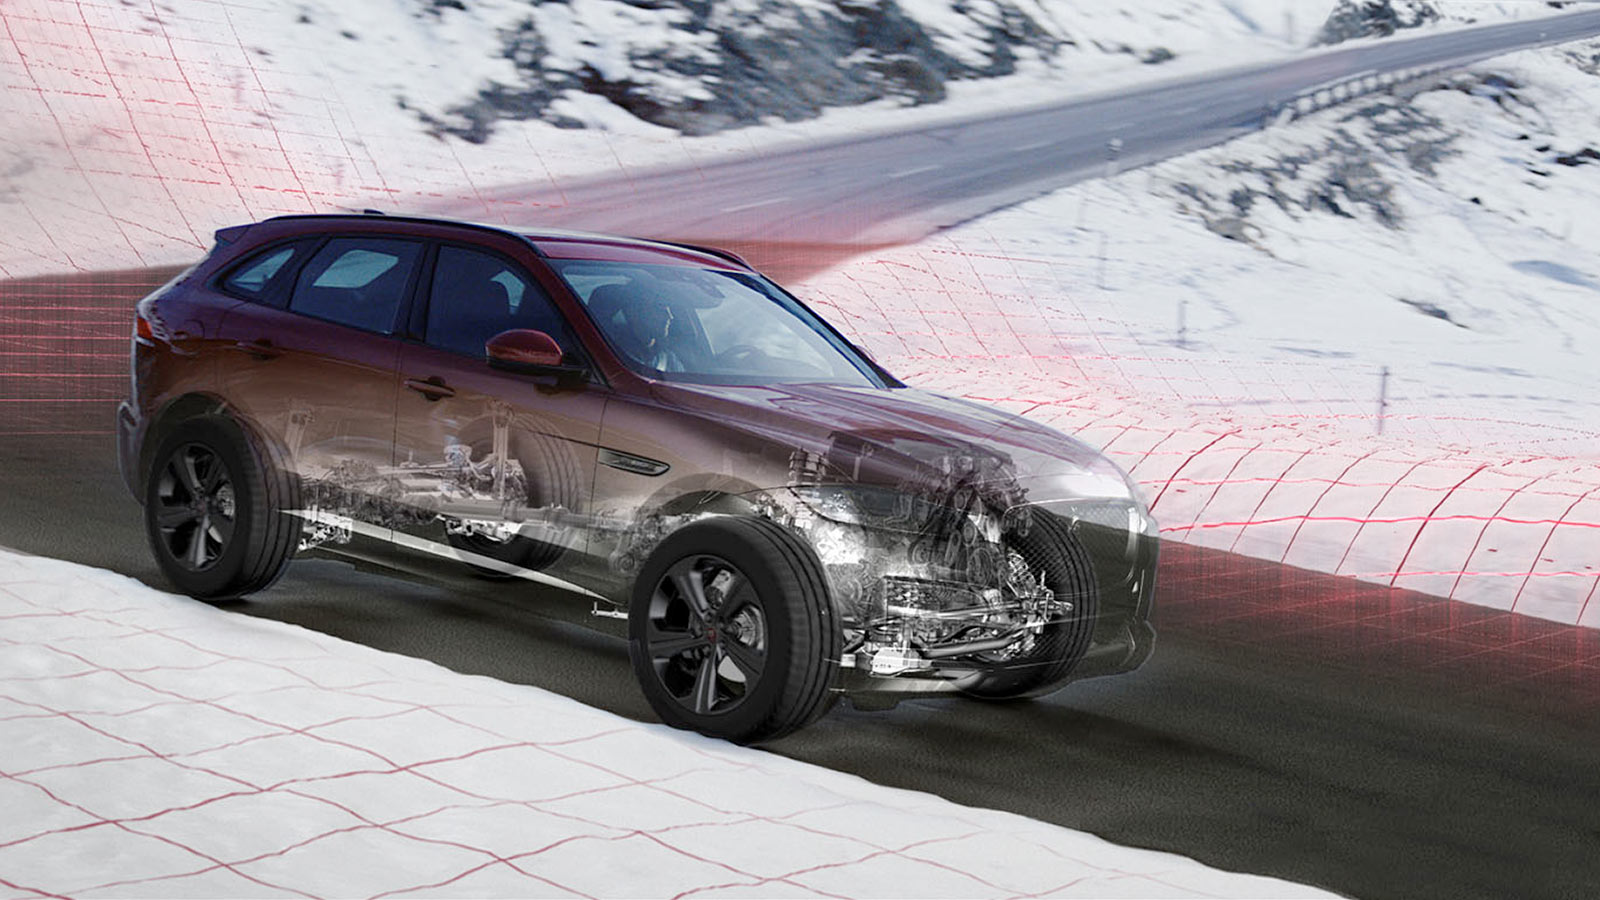 Jaguar F-Pace On Road Snow.